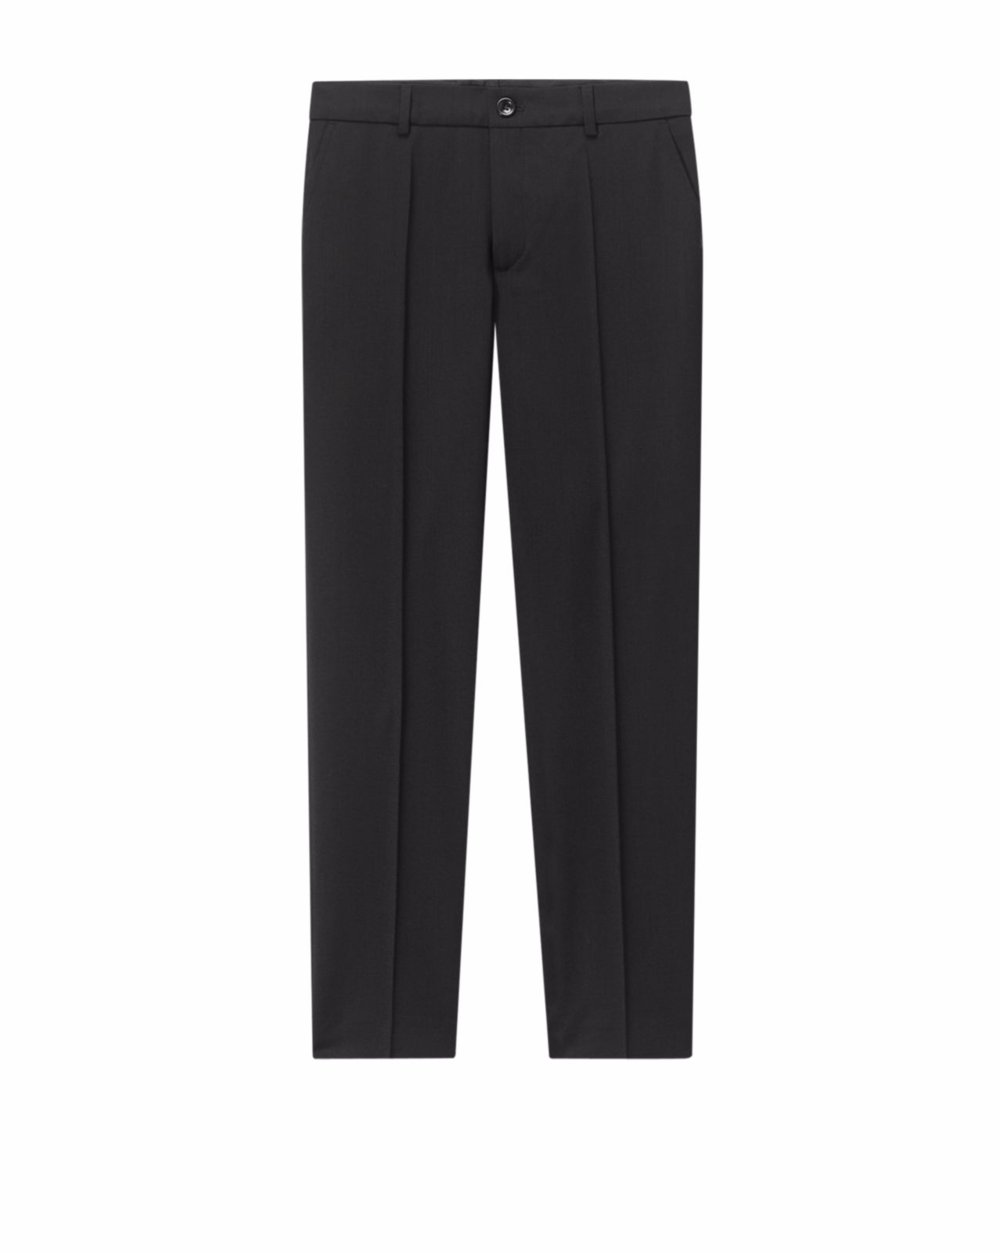 Filippa K wool slacks